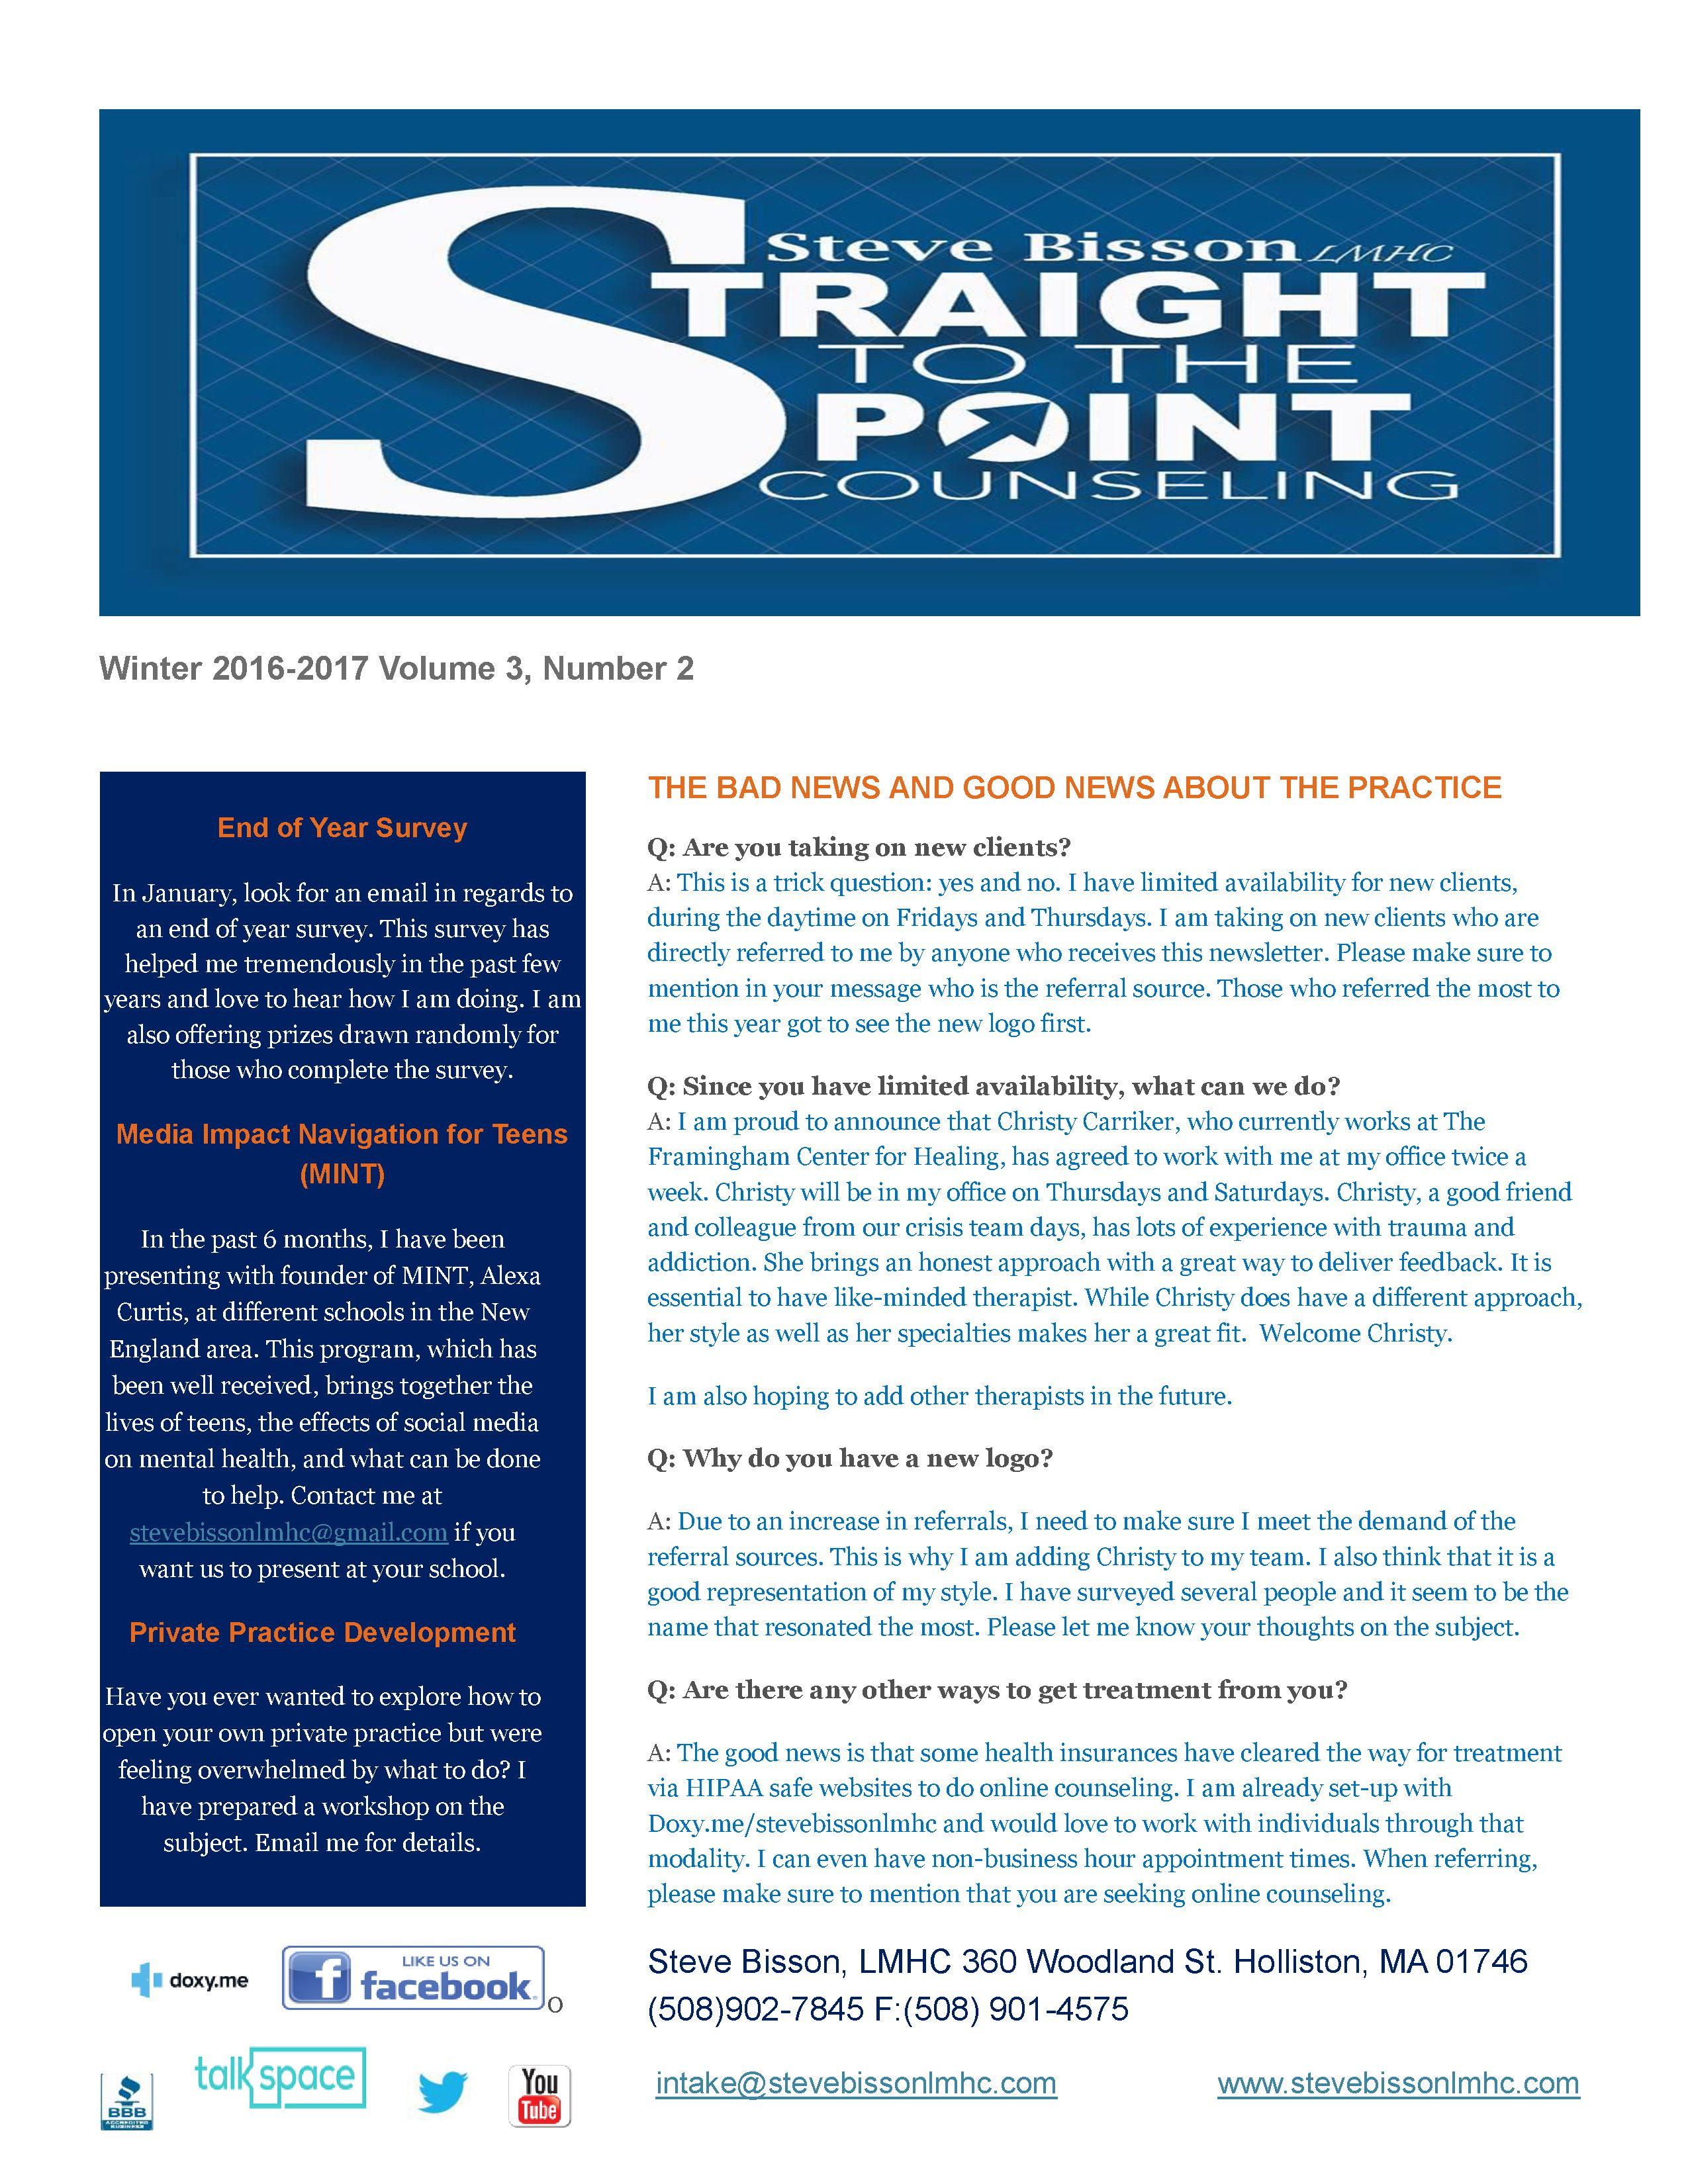 Winter  Newsletter  Steve Bisson Lmhc